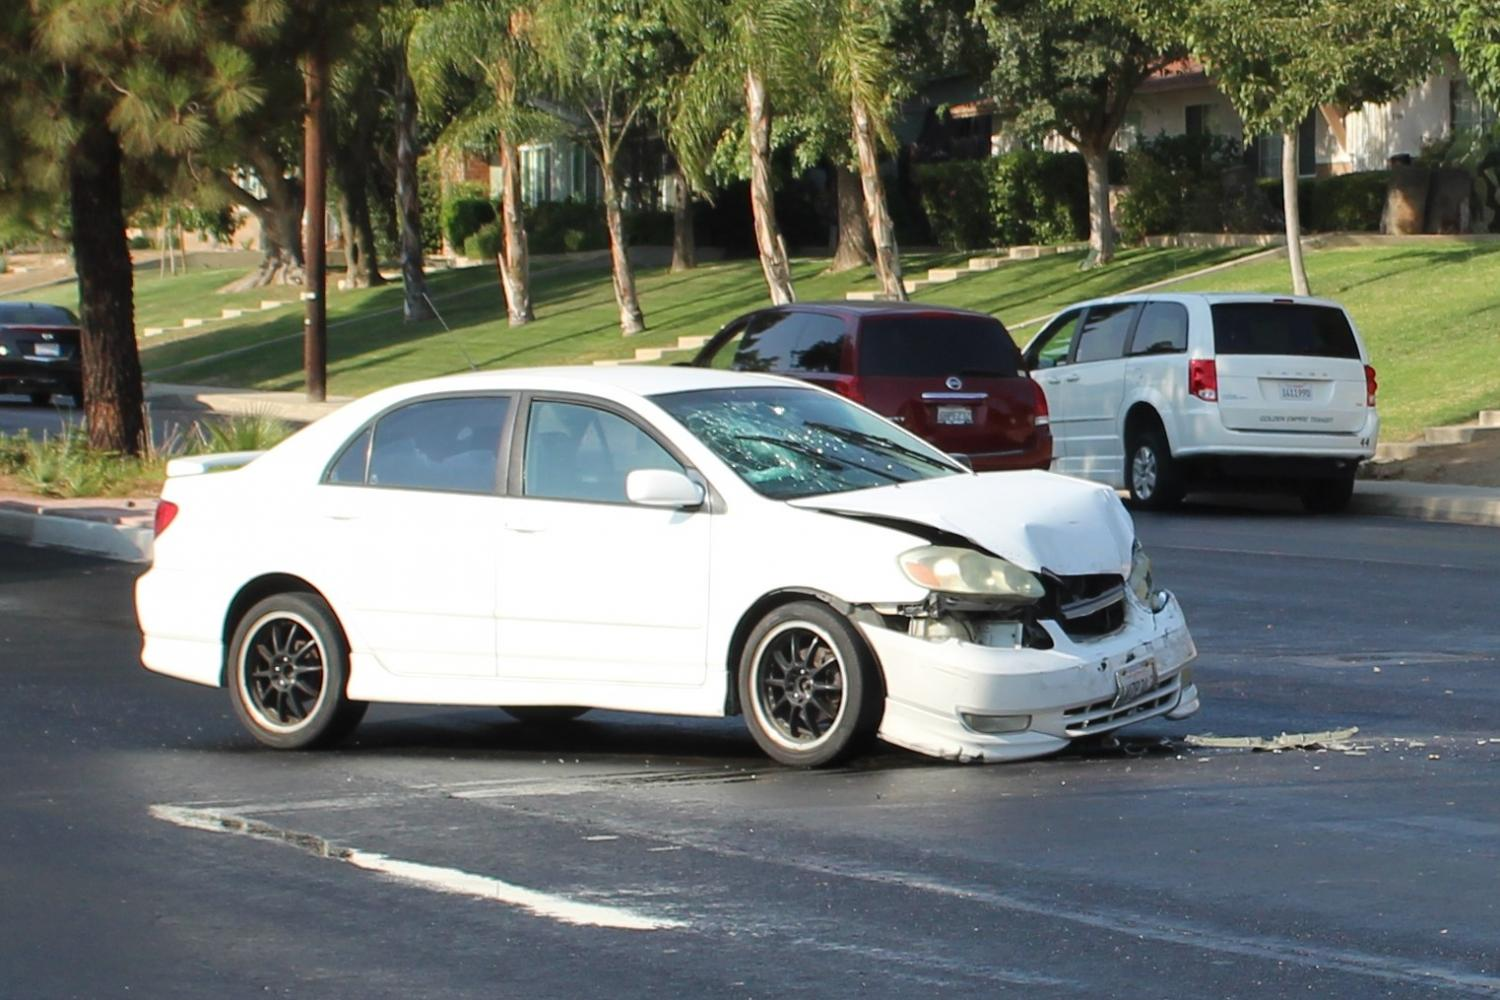 The+car+that+Gallegos+was+driving+sits+on+Mount+Vernon+with+a+broken+windshield+and+debris+after+a+hit-and-run.